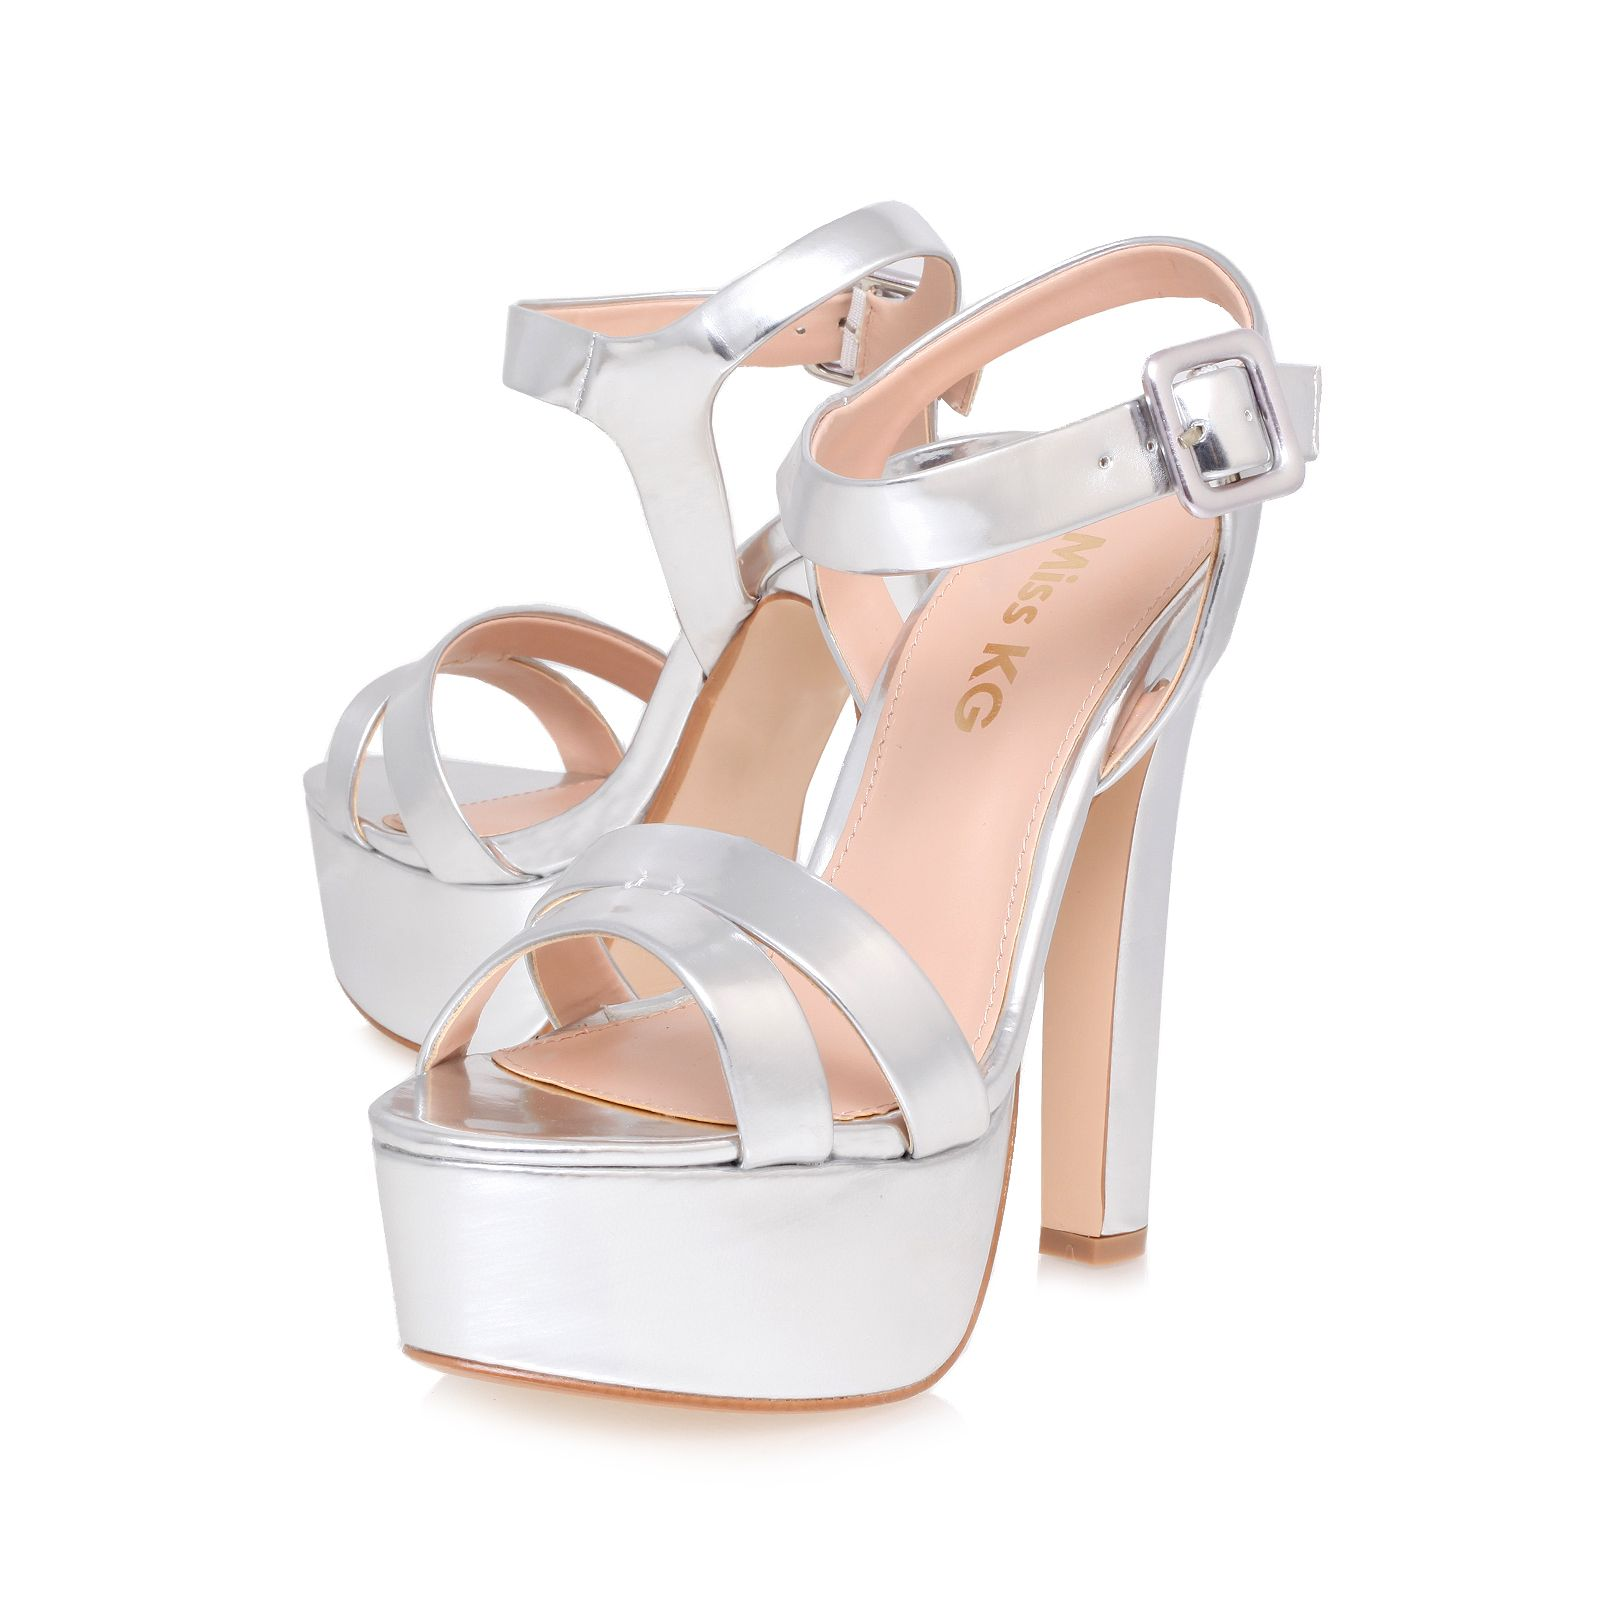 Echo high heel platform shoes